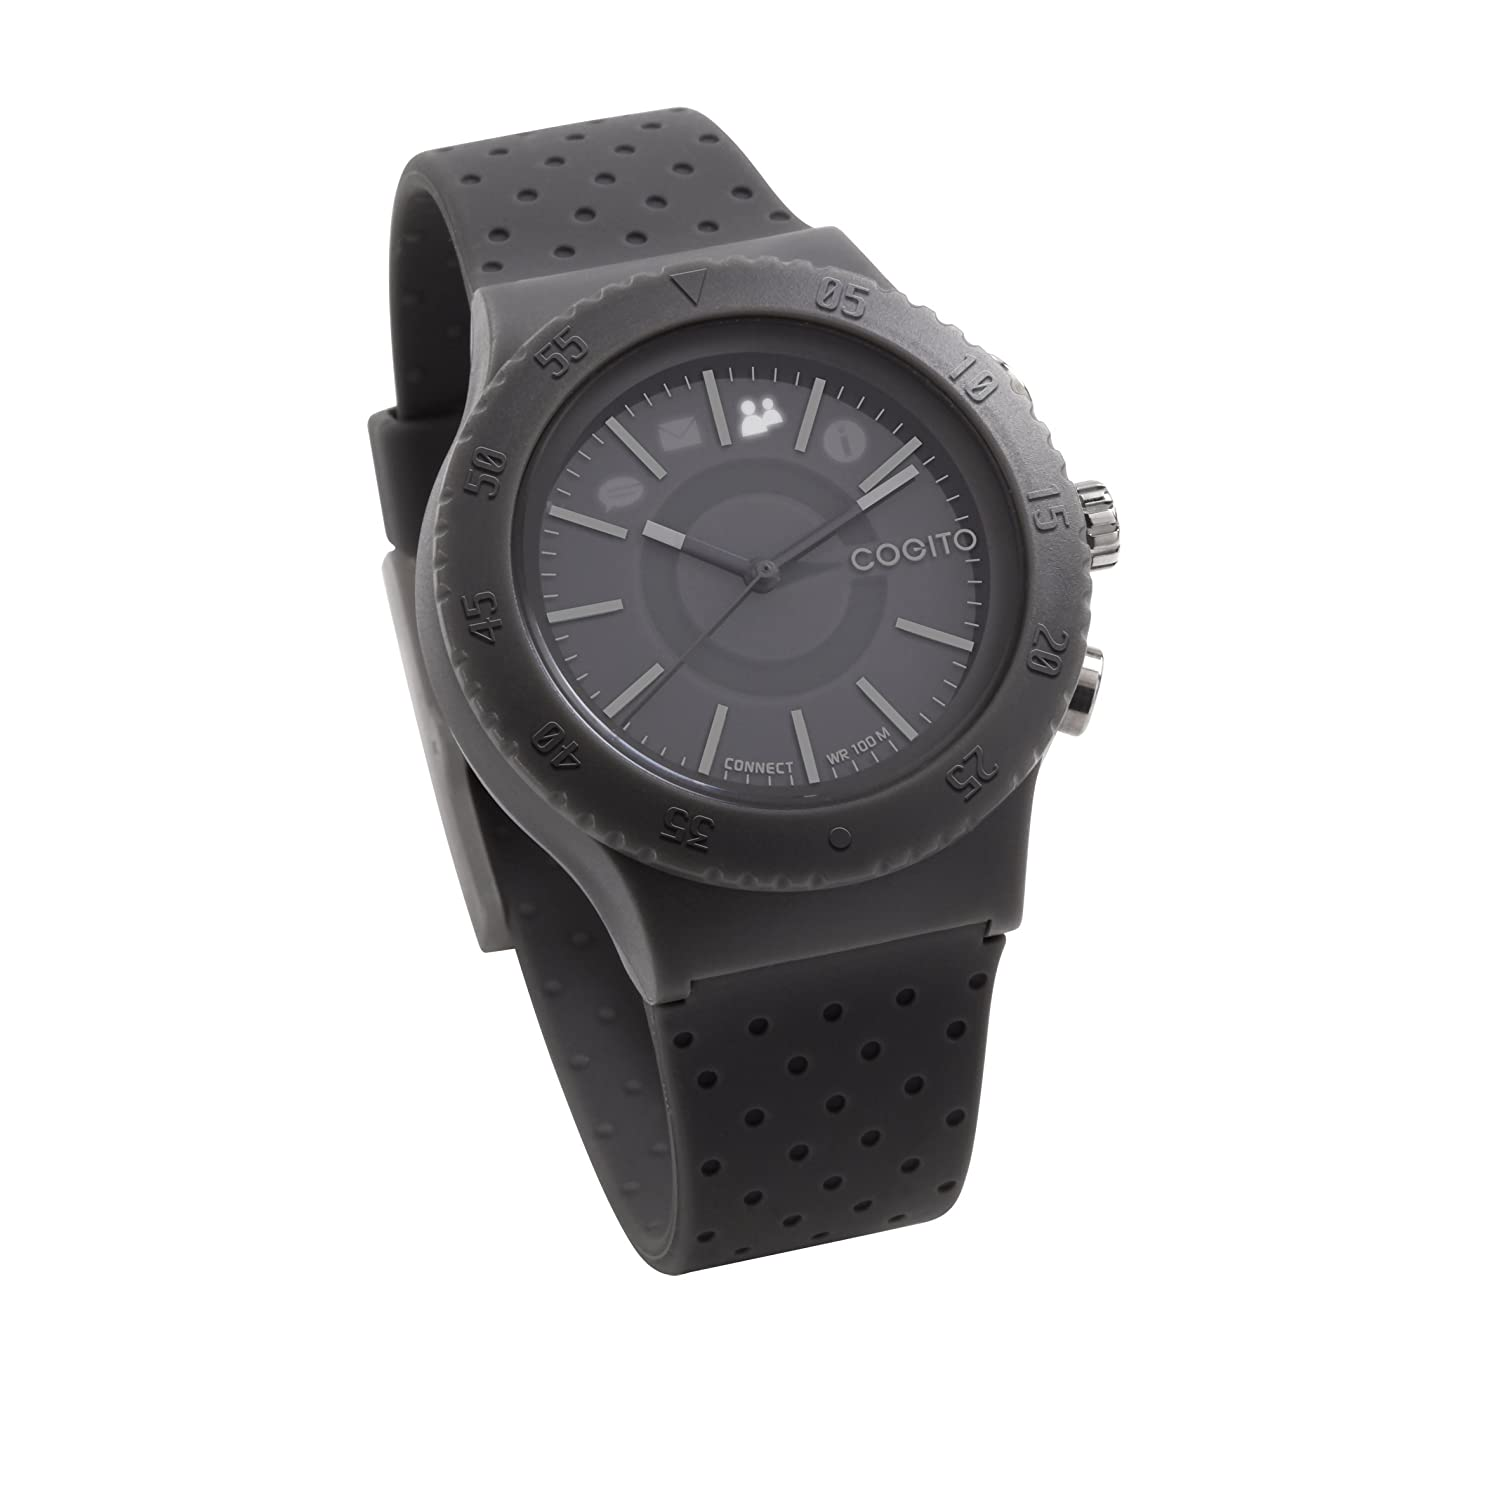 Cogito Pop Smart Bluetooth Connected Watch Grey Paloma 002 Senter Led Cell Phones Accessories